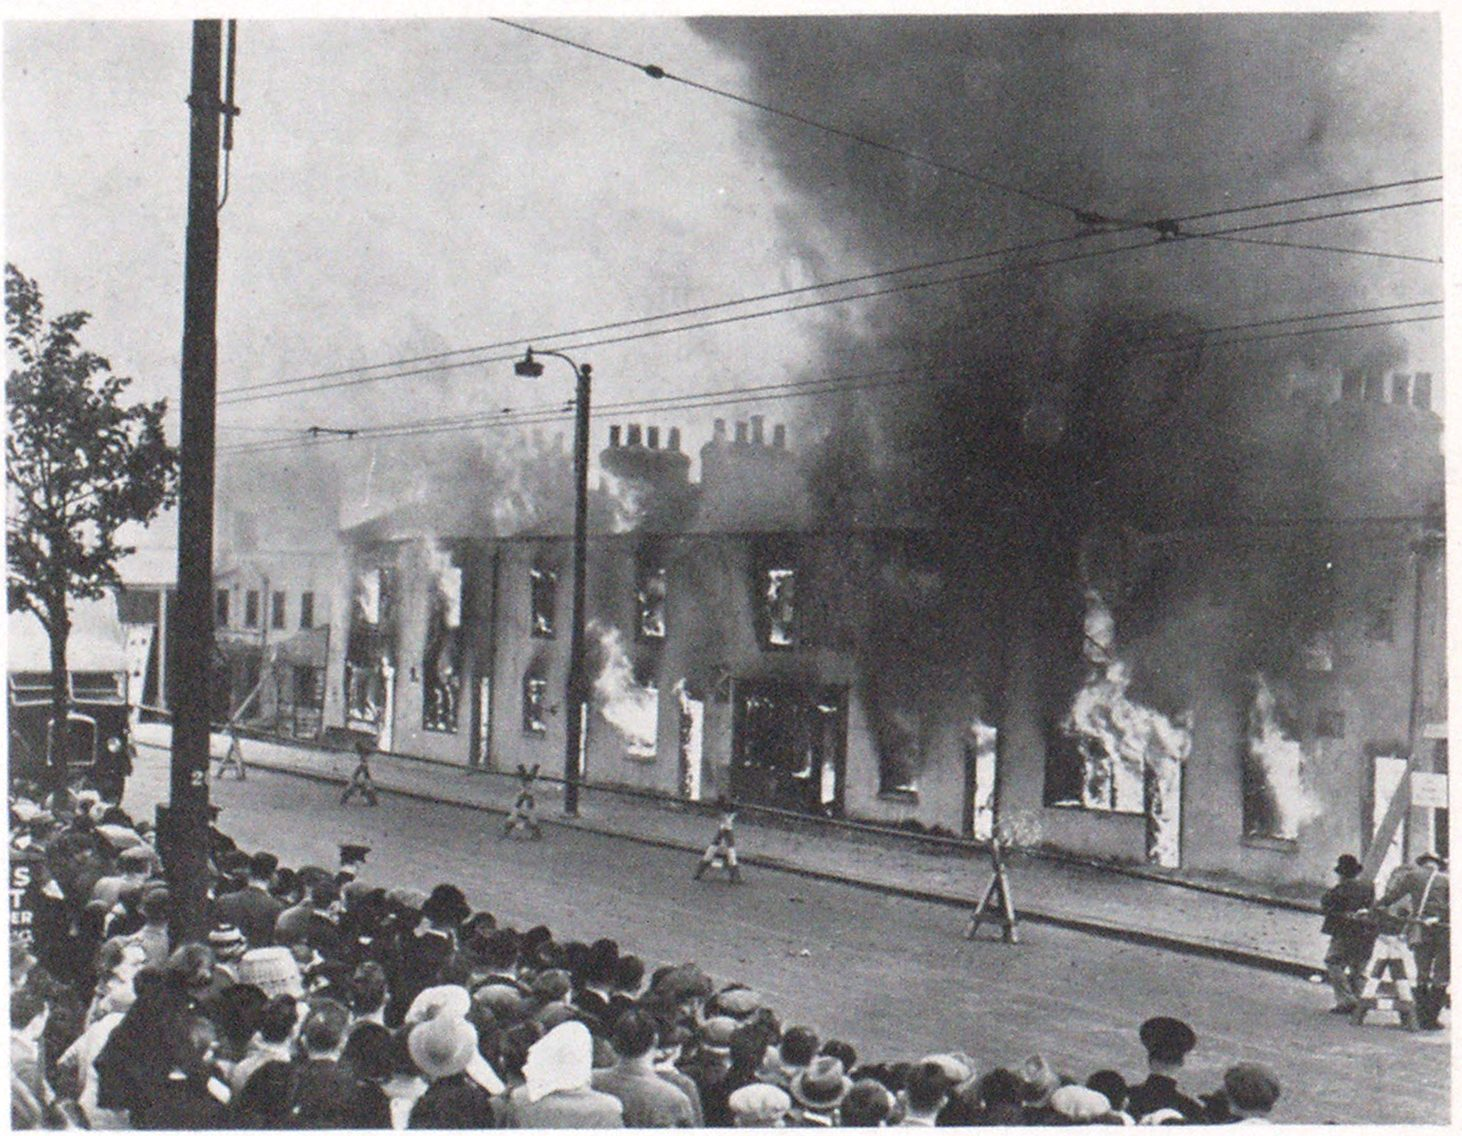 A Demonstration of Air Raid Protection Eight cottages were set on fire in Whetstone High Road. Finchley, London, and twenty dummies were rescued, as part of a realistic air raid precautions exercise. The cottages were set on fire to test the efficiency of the fire-fighting organization.